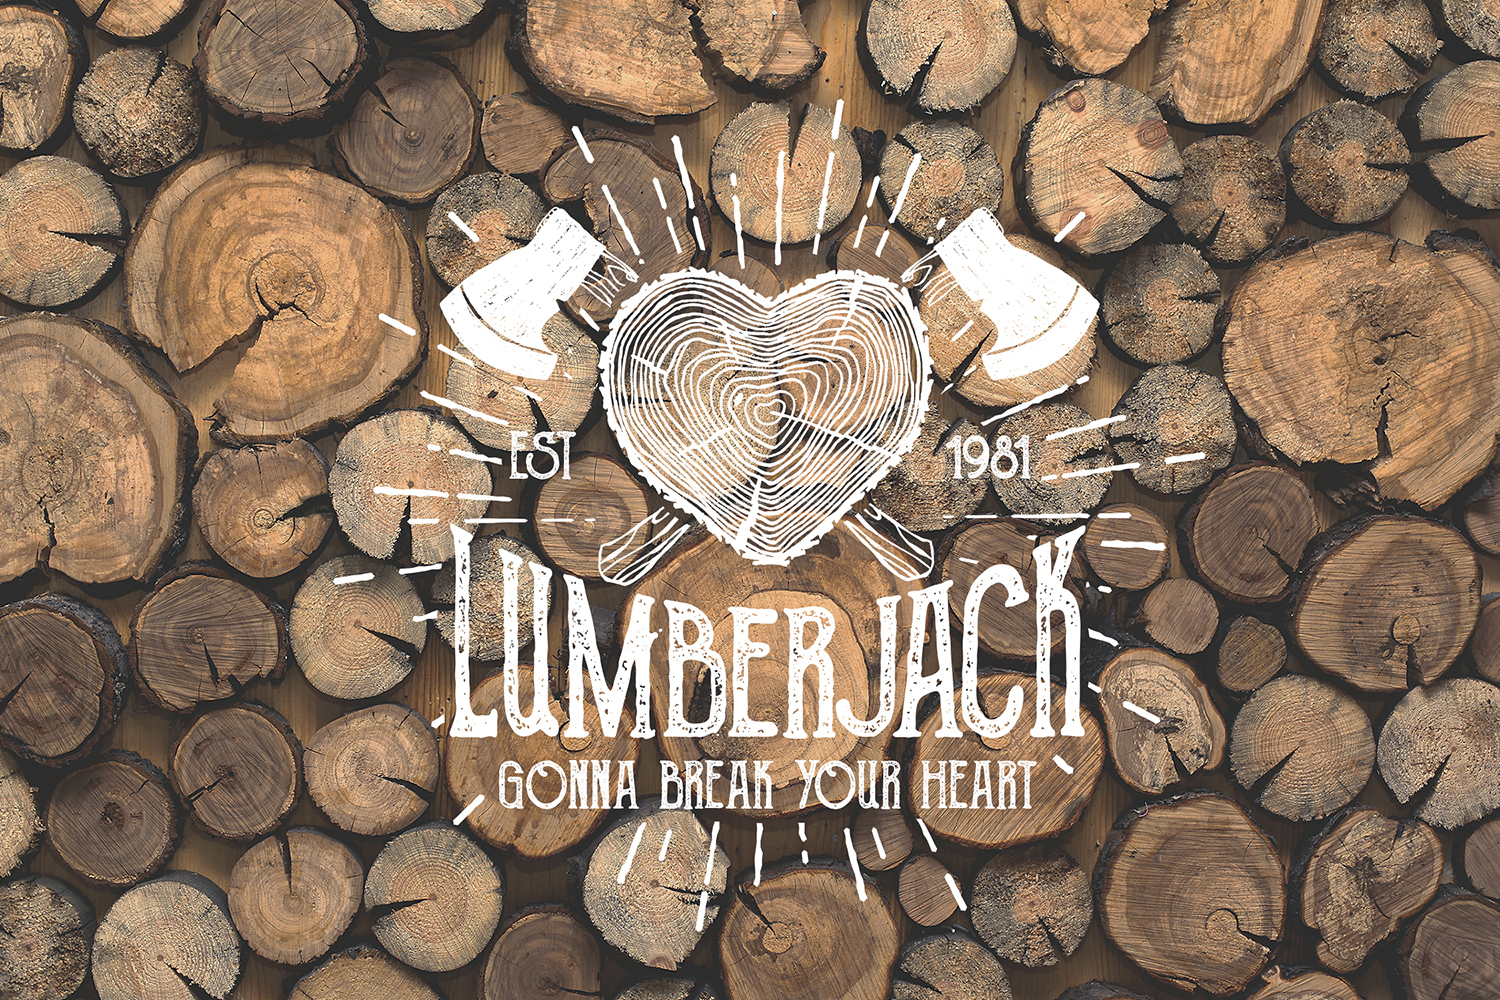 Lumberjack - Vintage Badges Graphic By Cosmic Store Image 4